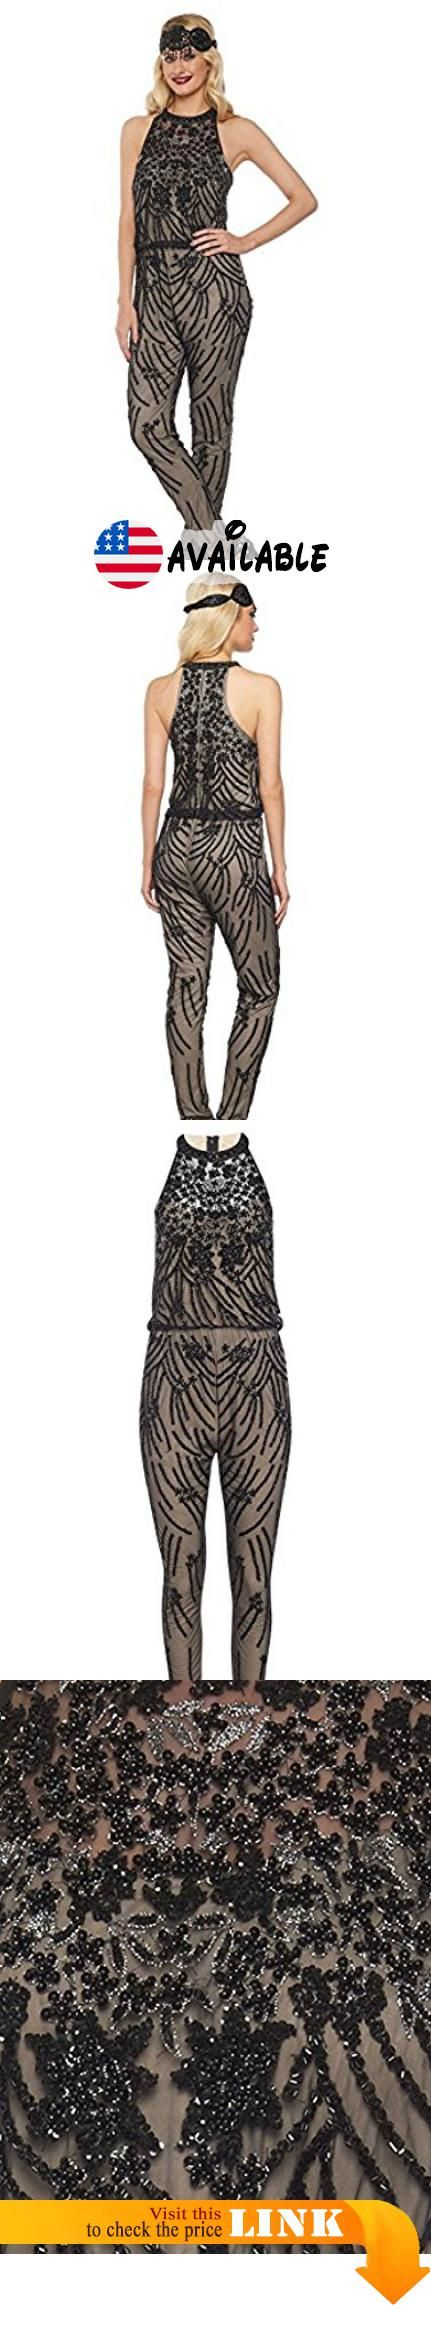 fcdb3ee915e Cora 1920 s Vintage Inspired Jumpsuit In Nude Black (12). Fabric 95%  viscose 5% elastane. Beautiful quality and stretches well.